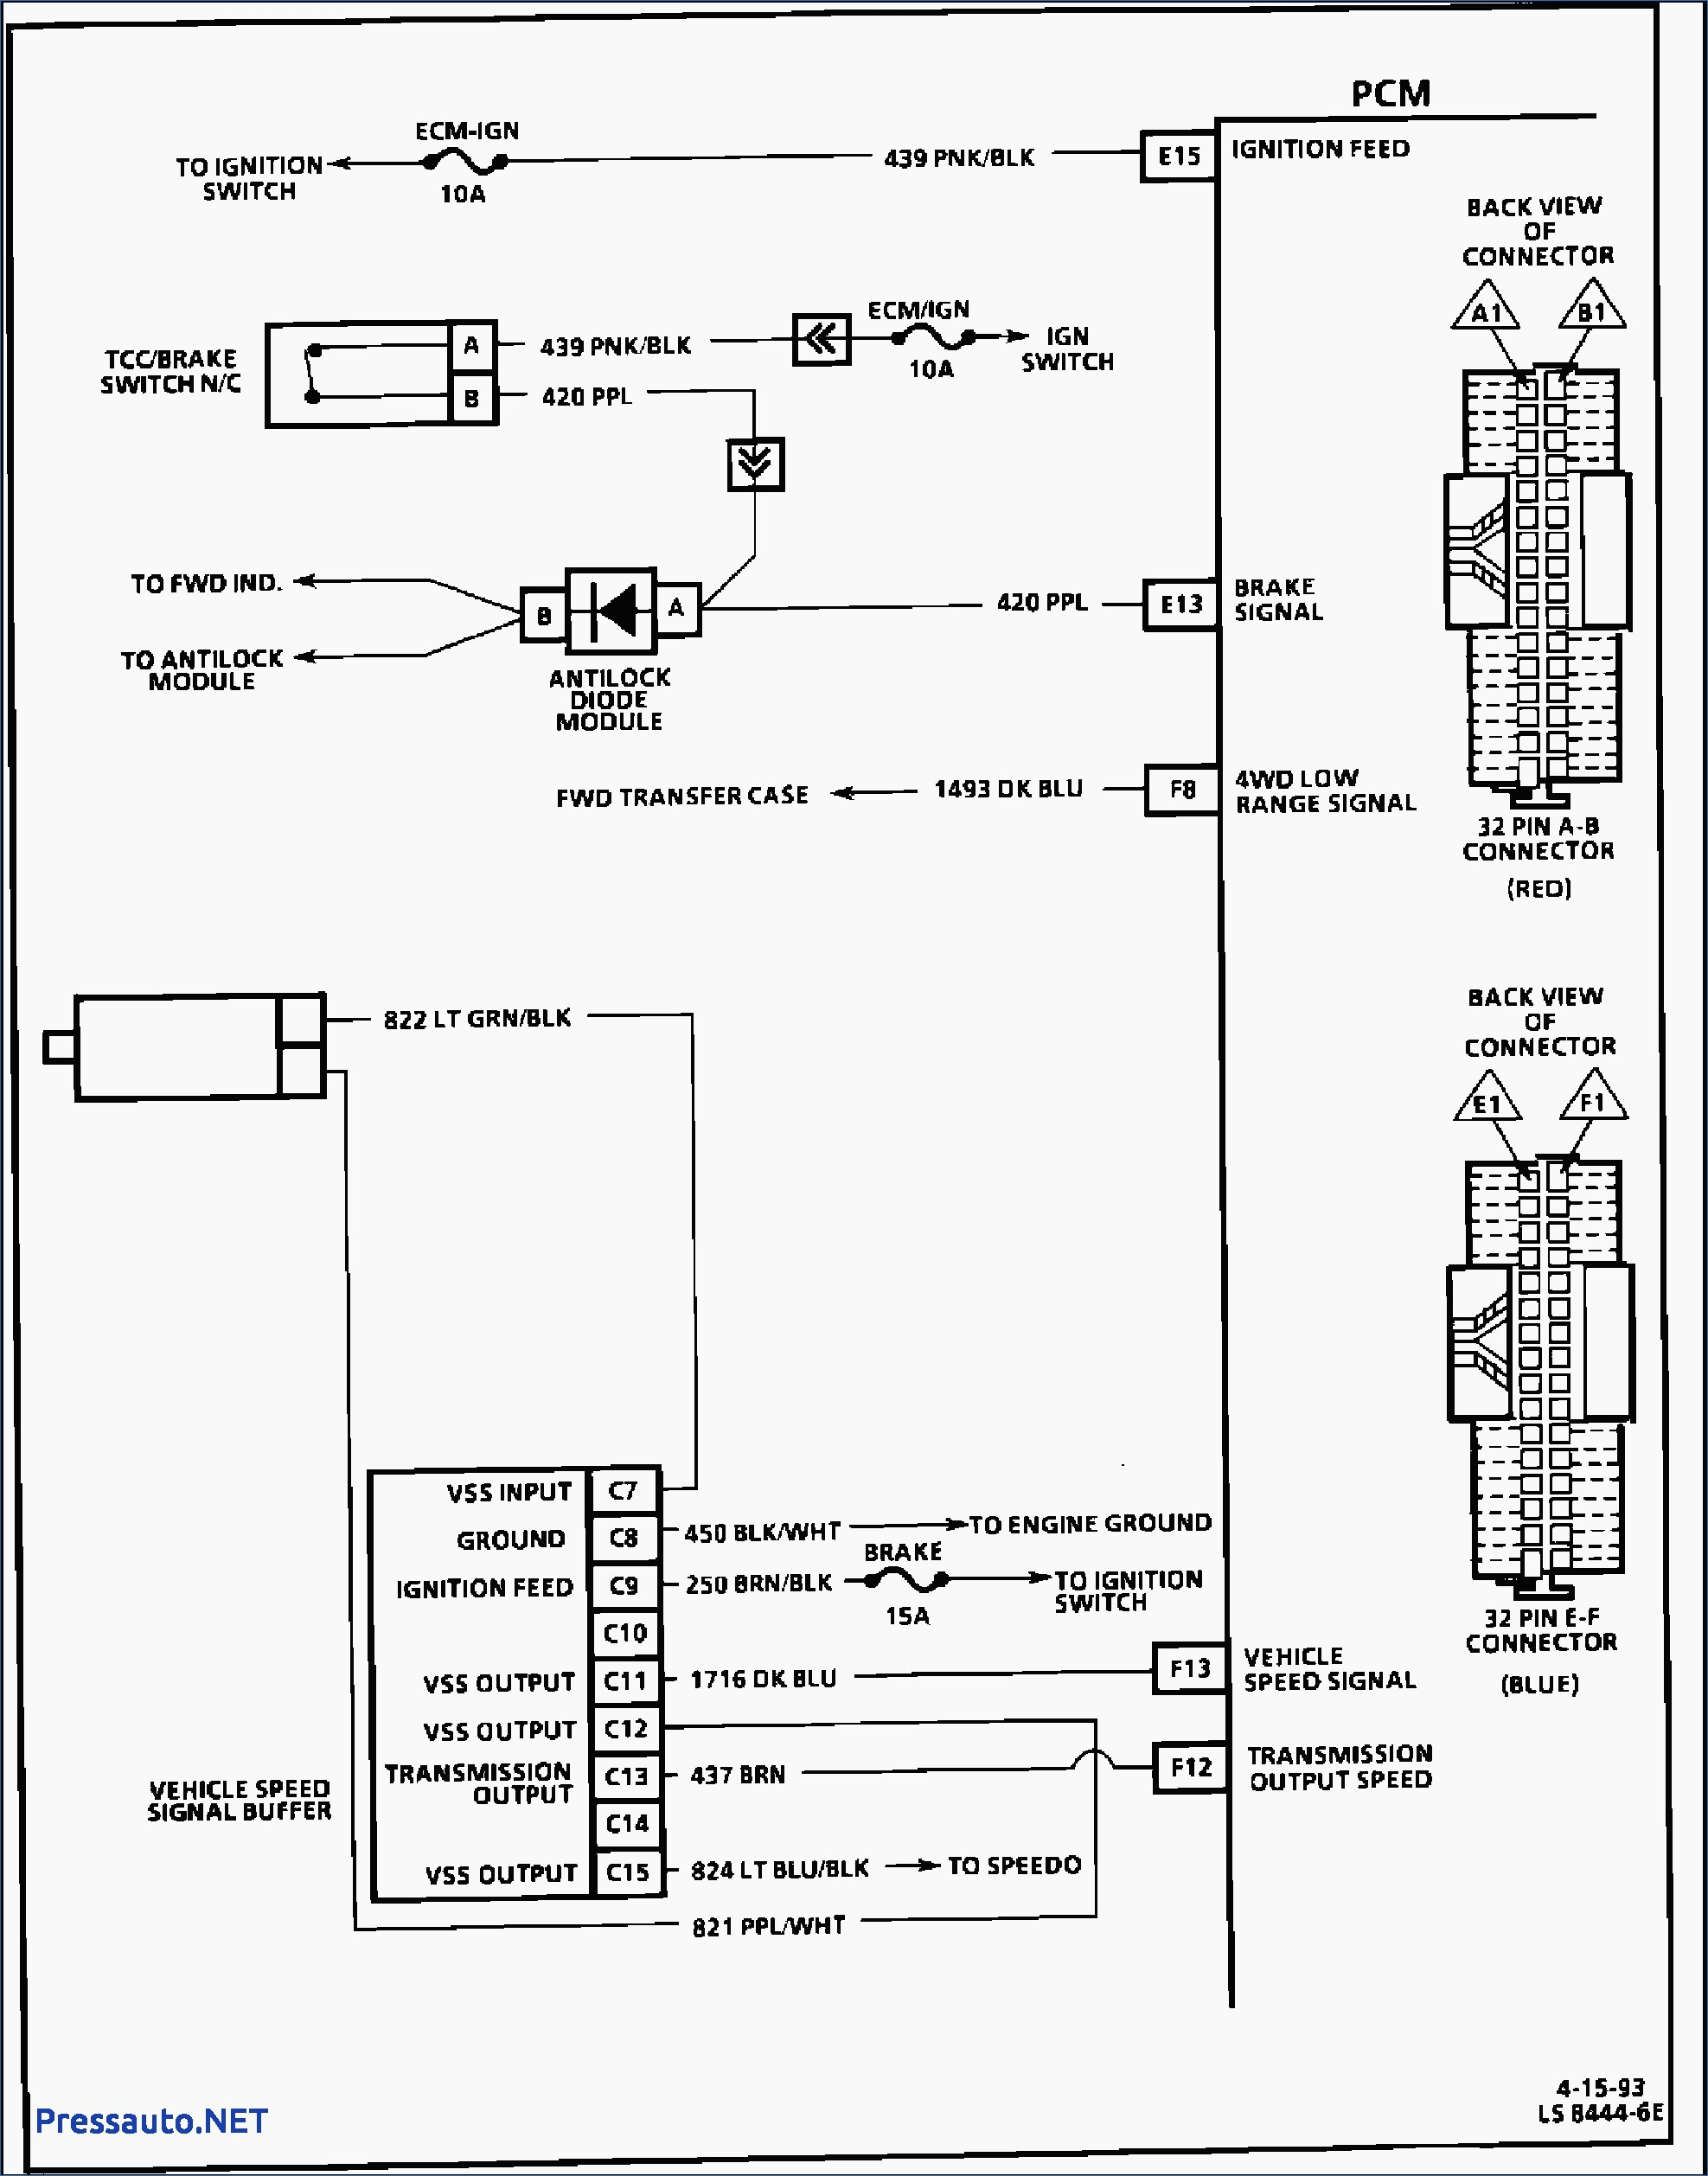 1993 4l80e Transmission Wiring Diagram | Wiring Diagram on